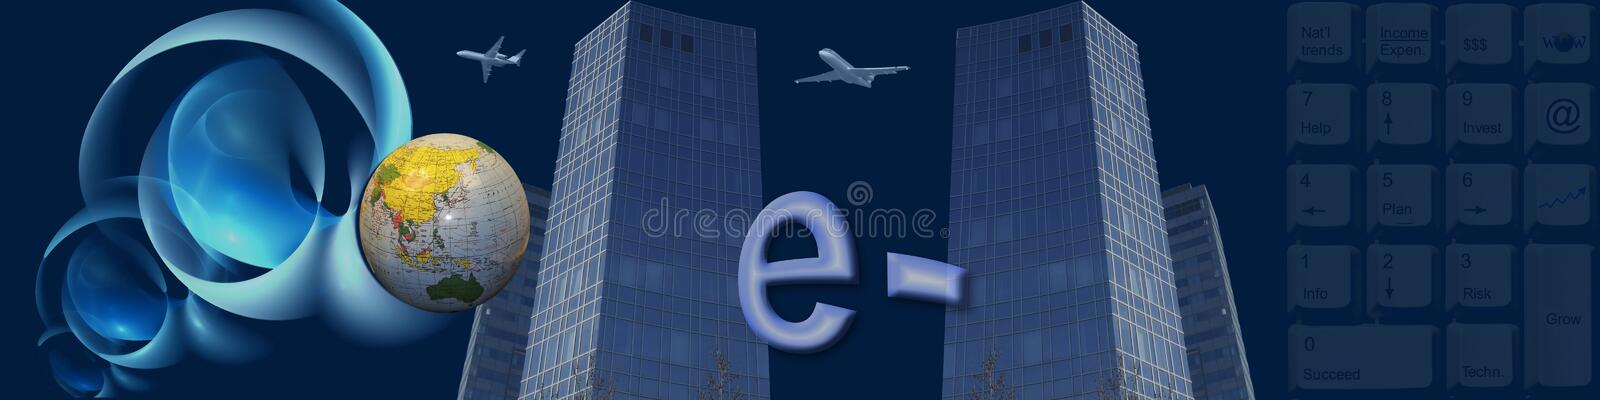 Banner Worldwide e-commerce. The glove skyscrapers keyboard and the abstract 3d shapes are metaphors. Together with the e- this banner / header is about Using royalty free illustration